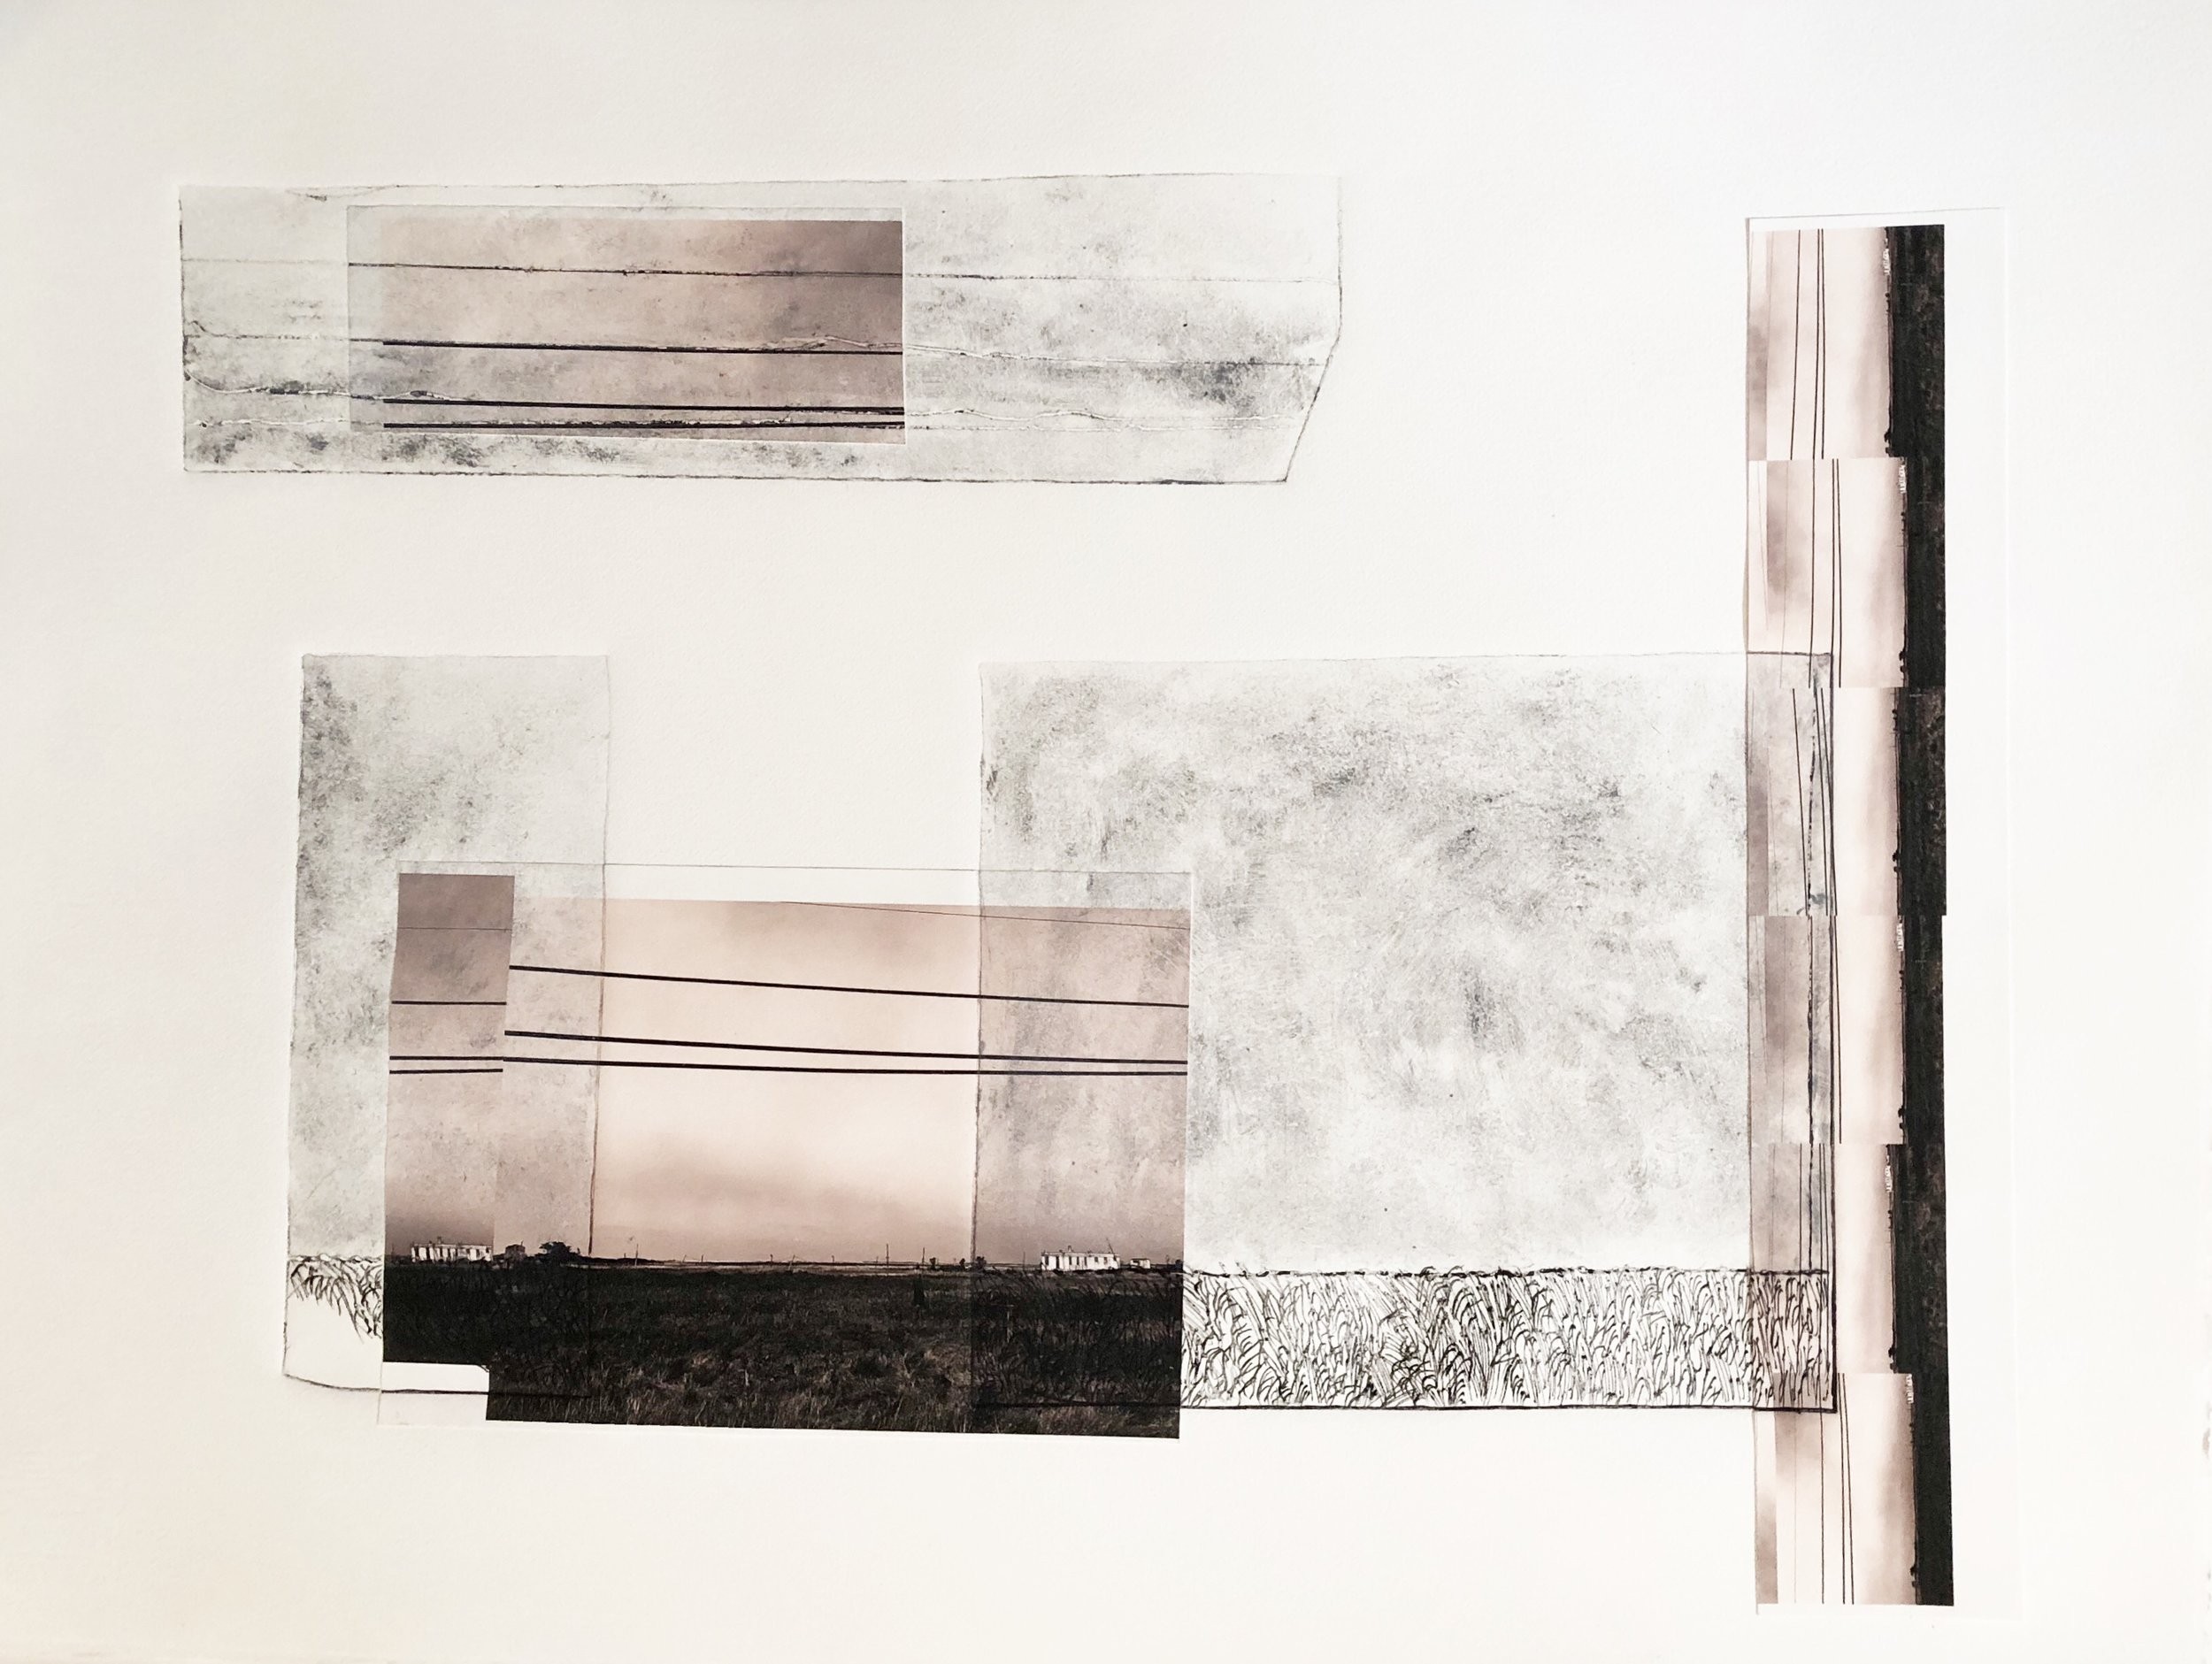 Napeague Horizons, 2018, archival print photographs, etching, monotypes, 22 x 30 in, $2,300